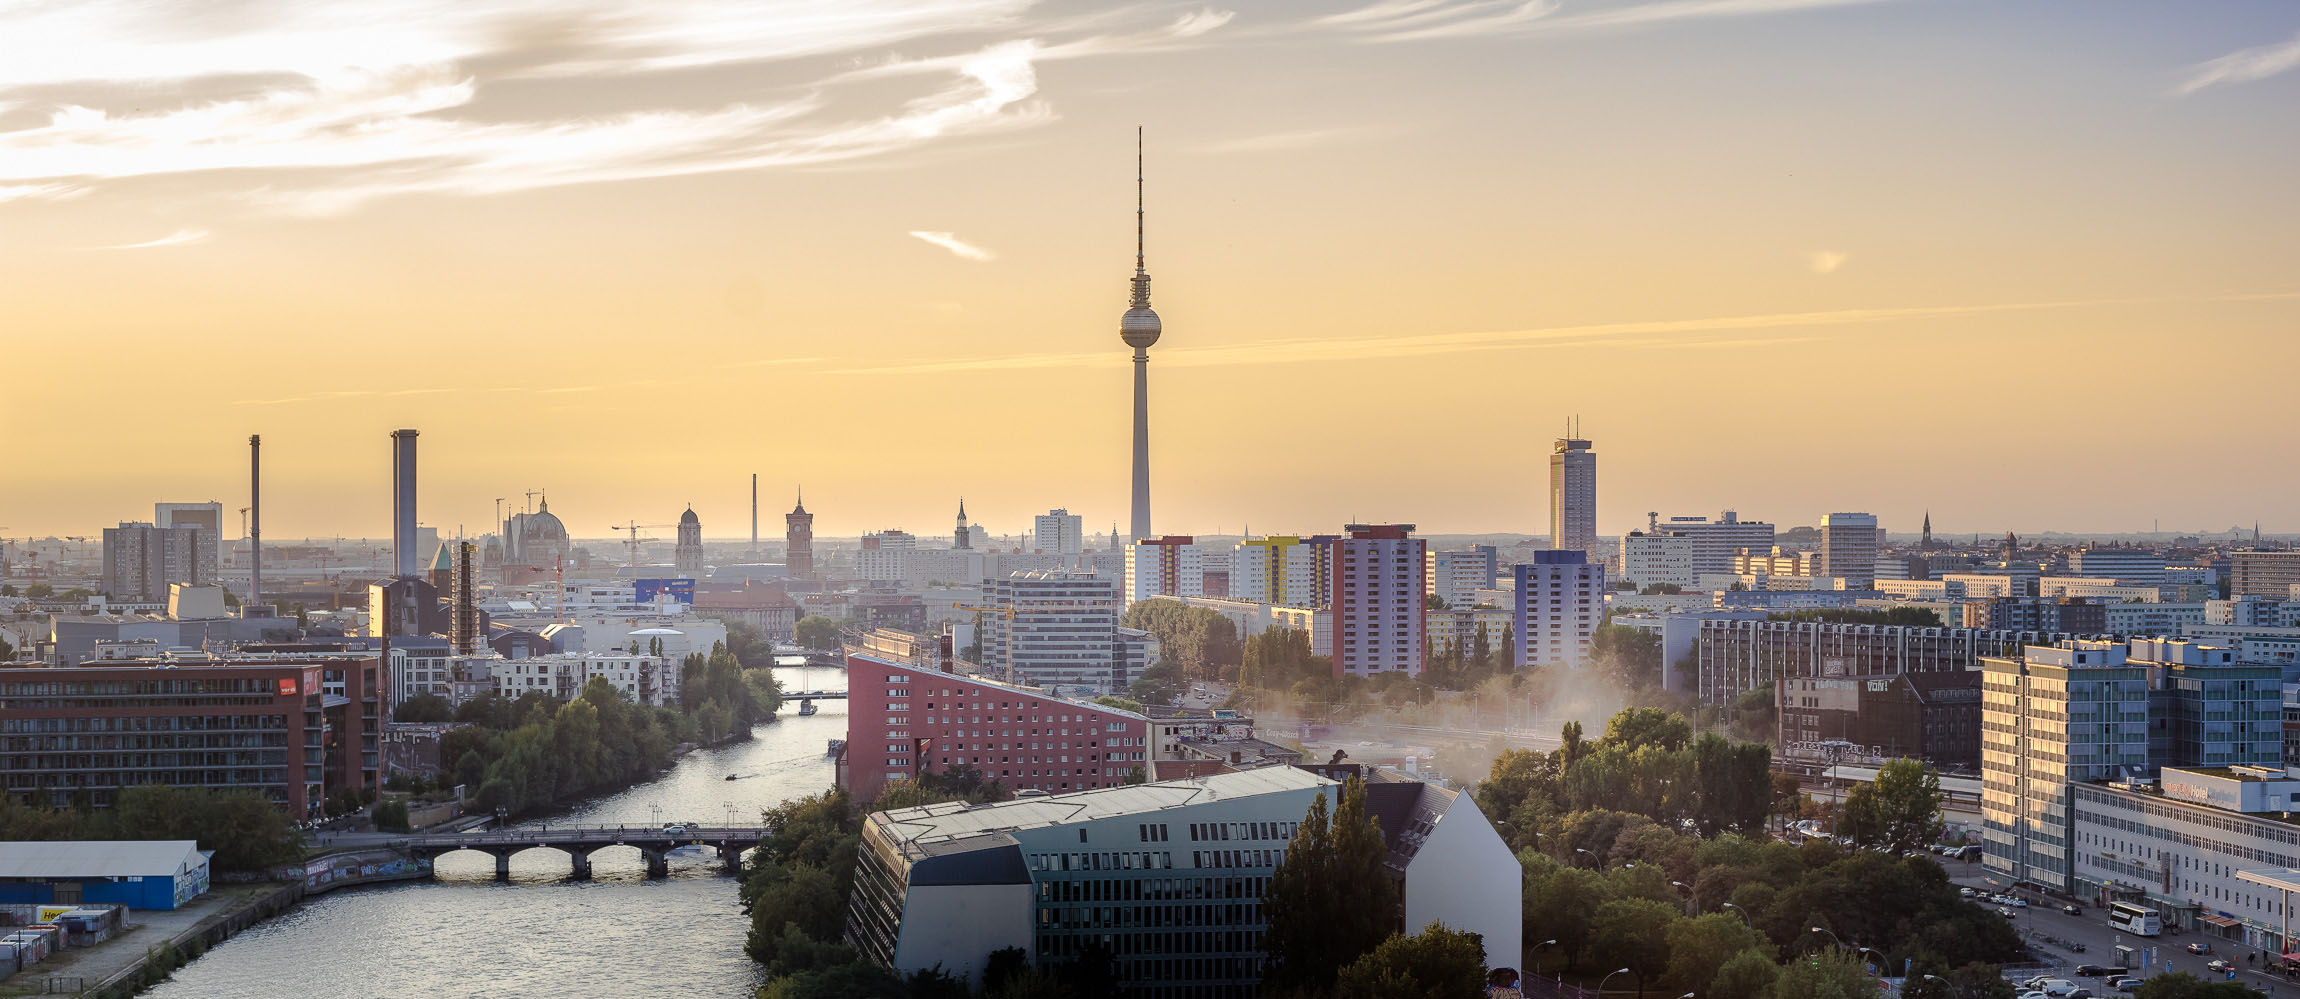 Panorama Berlin Skyline